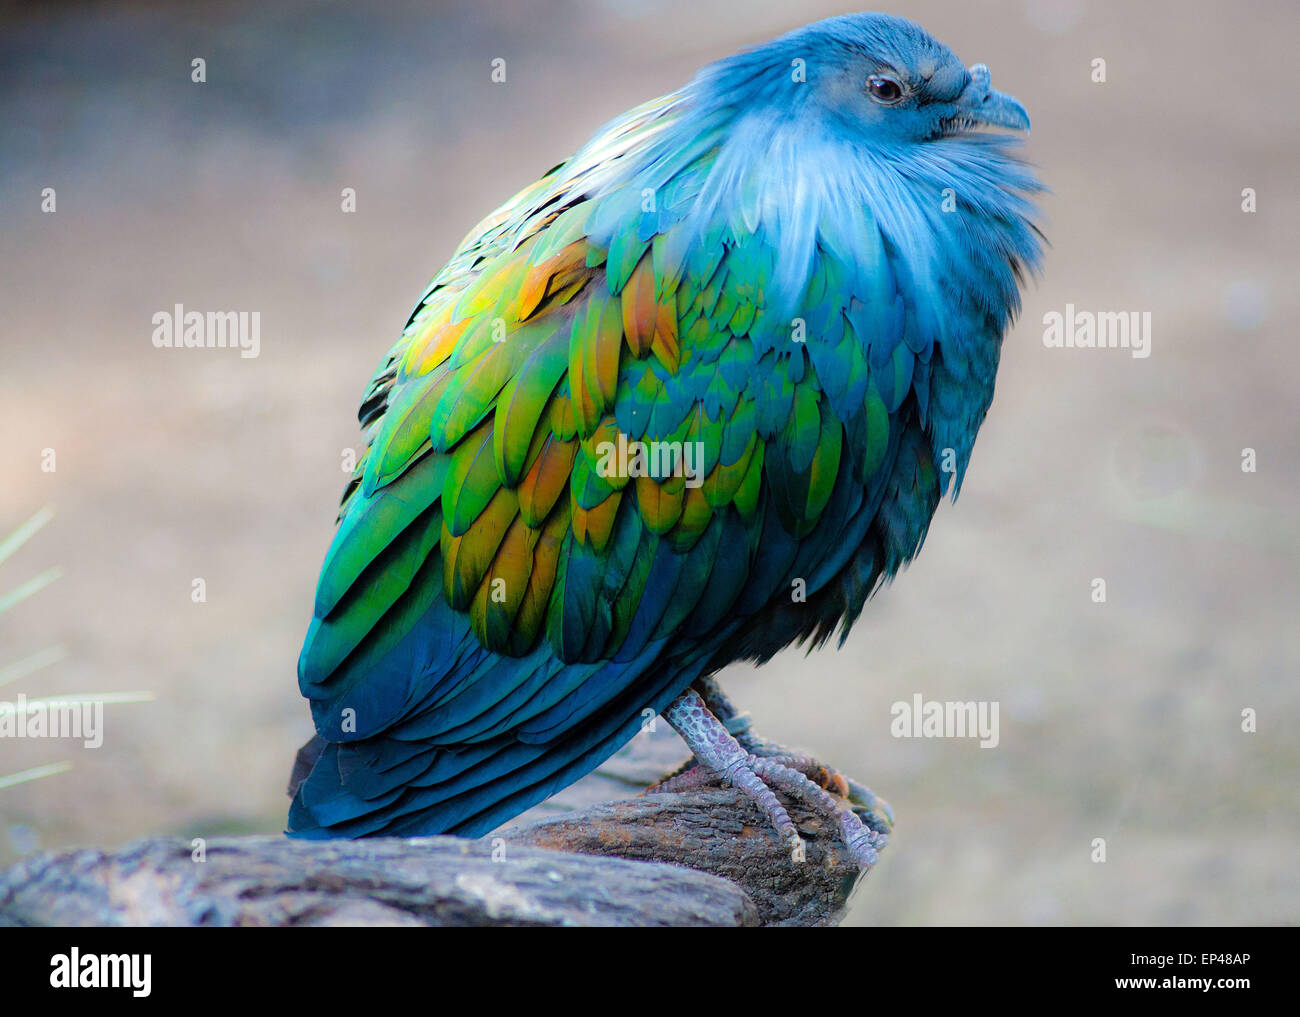 Nicobar Pigeon perched on a rock, South Africa - Stock Image